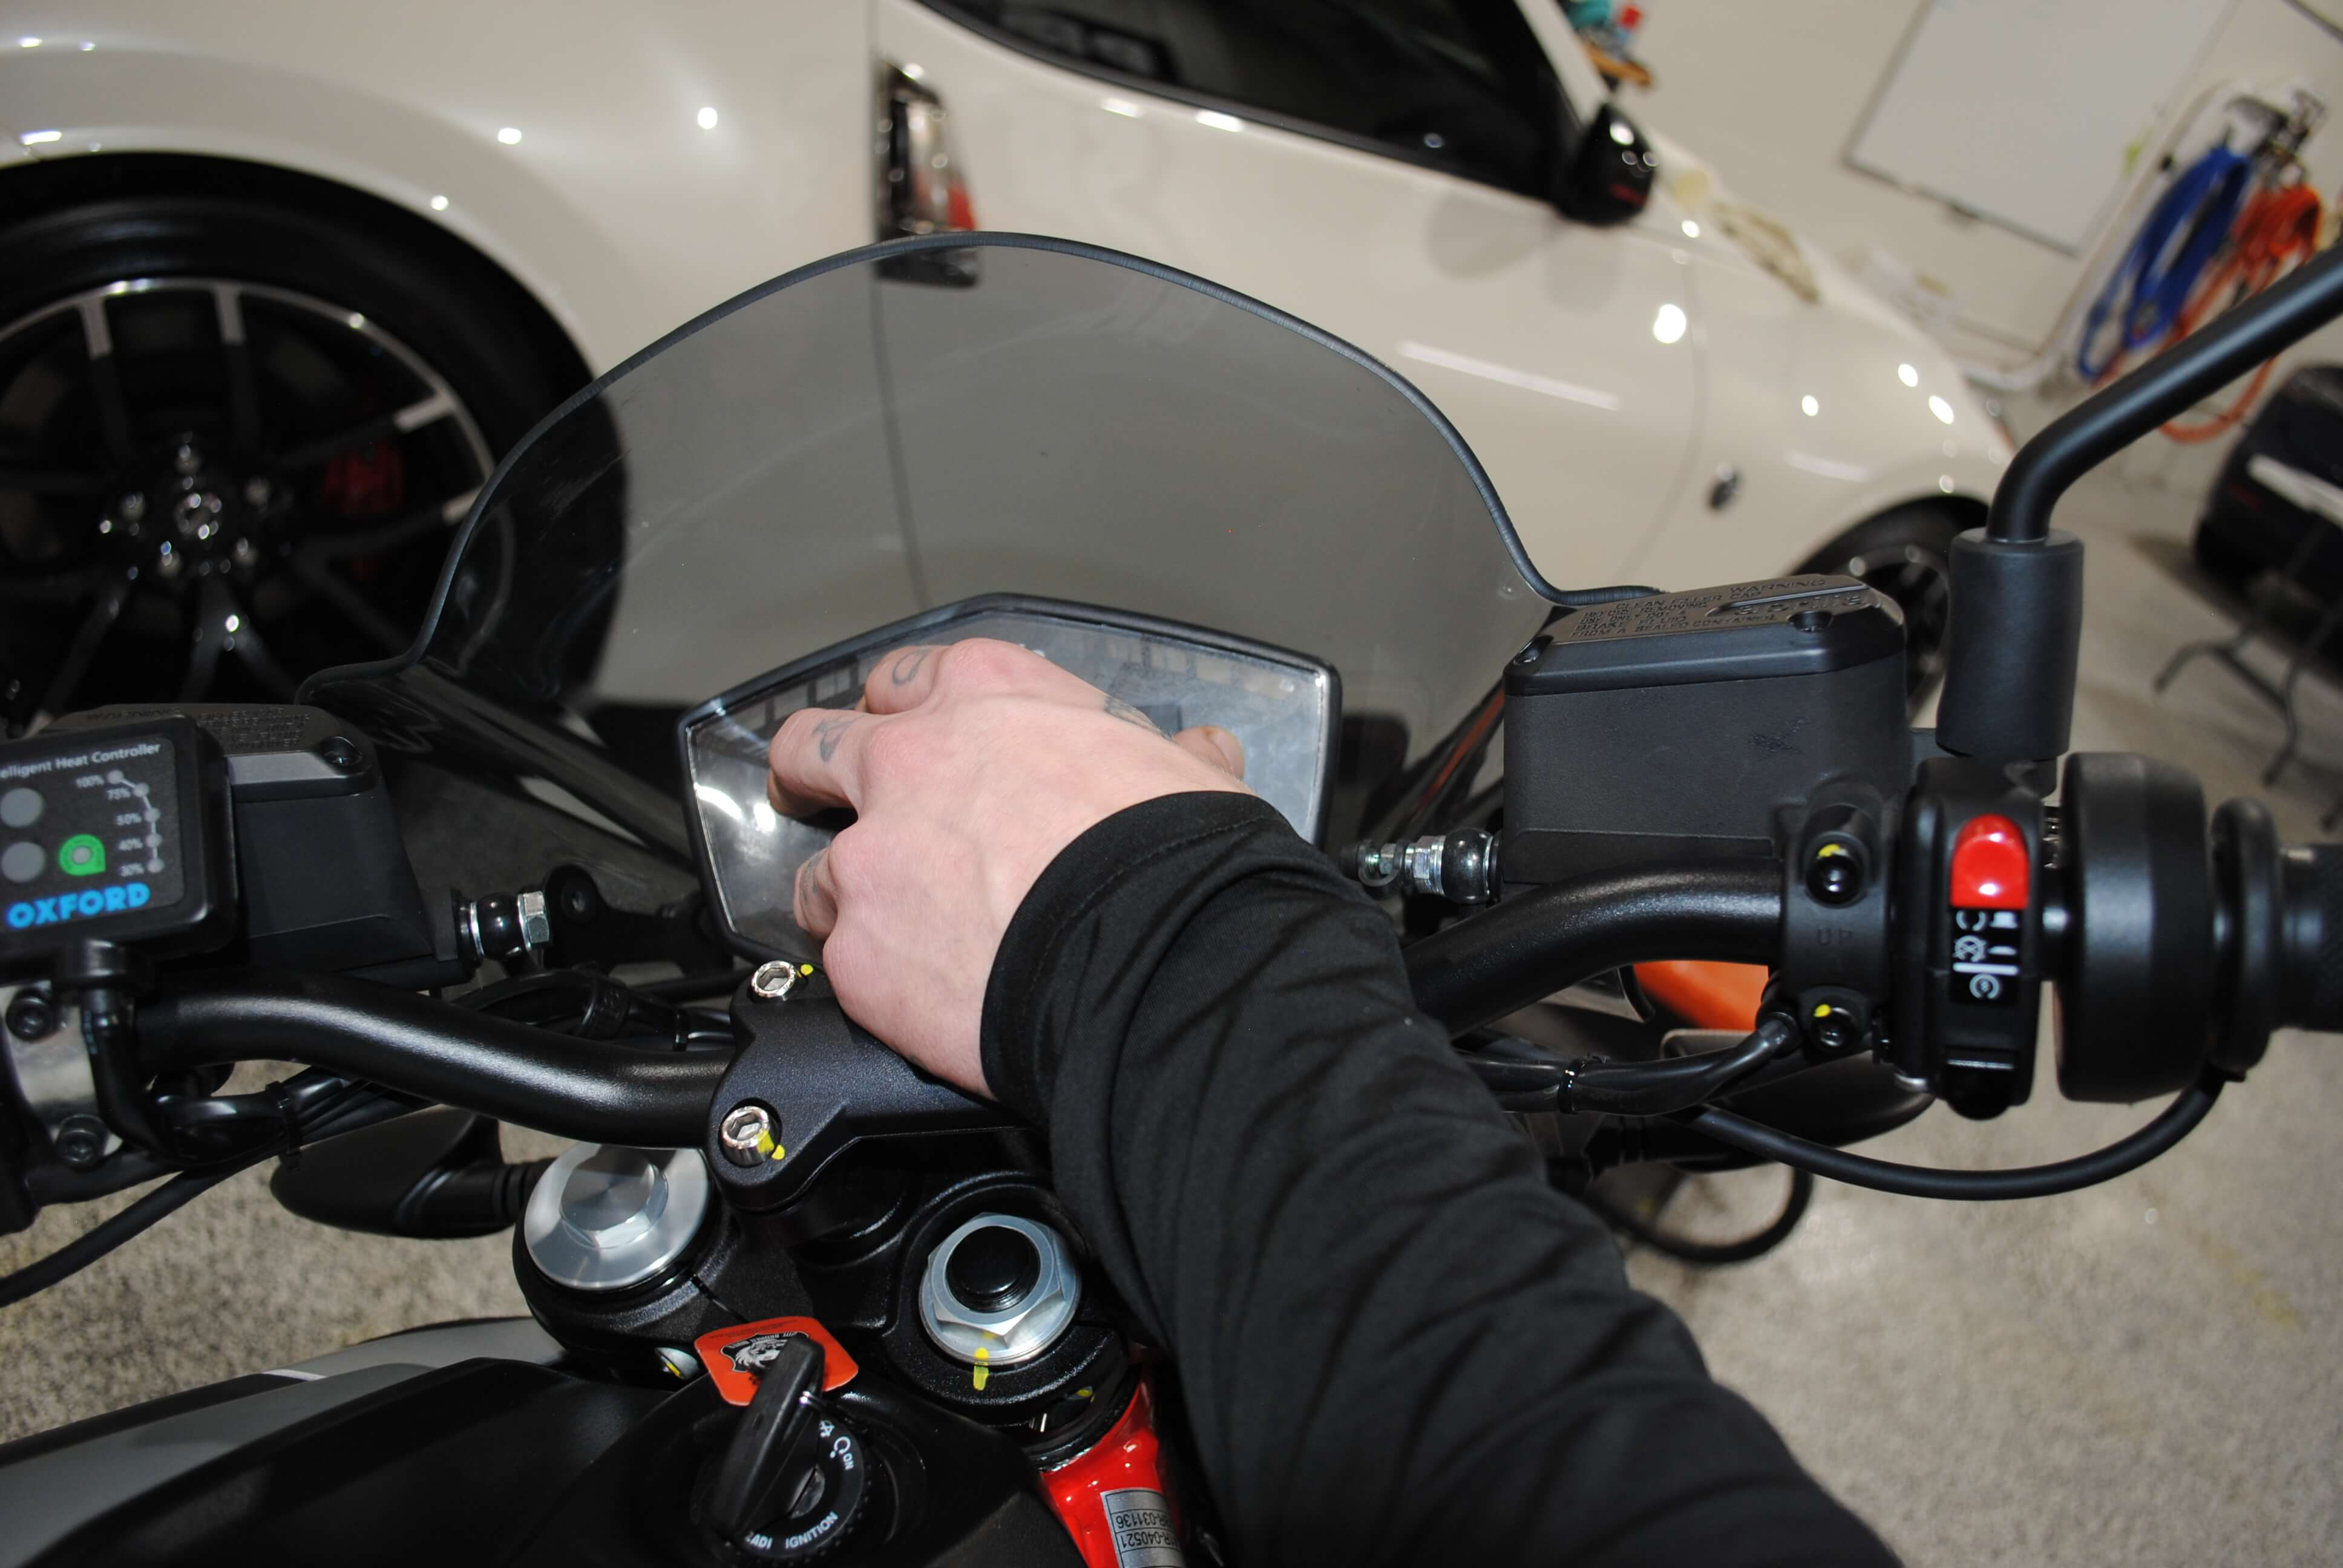 Installing Protective Film to Your Motorcycle